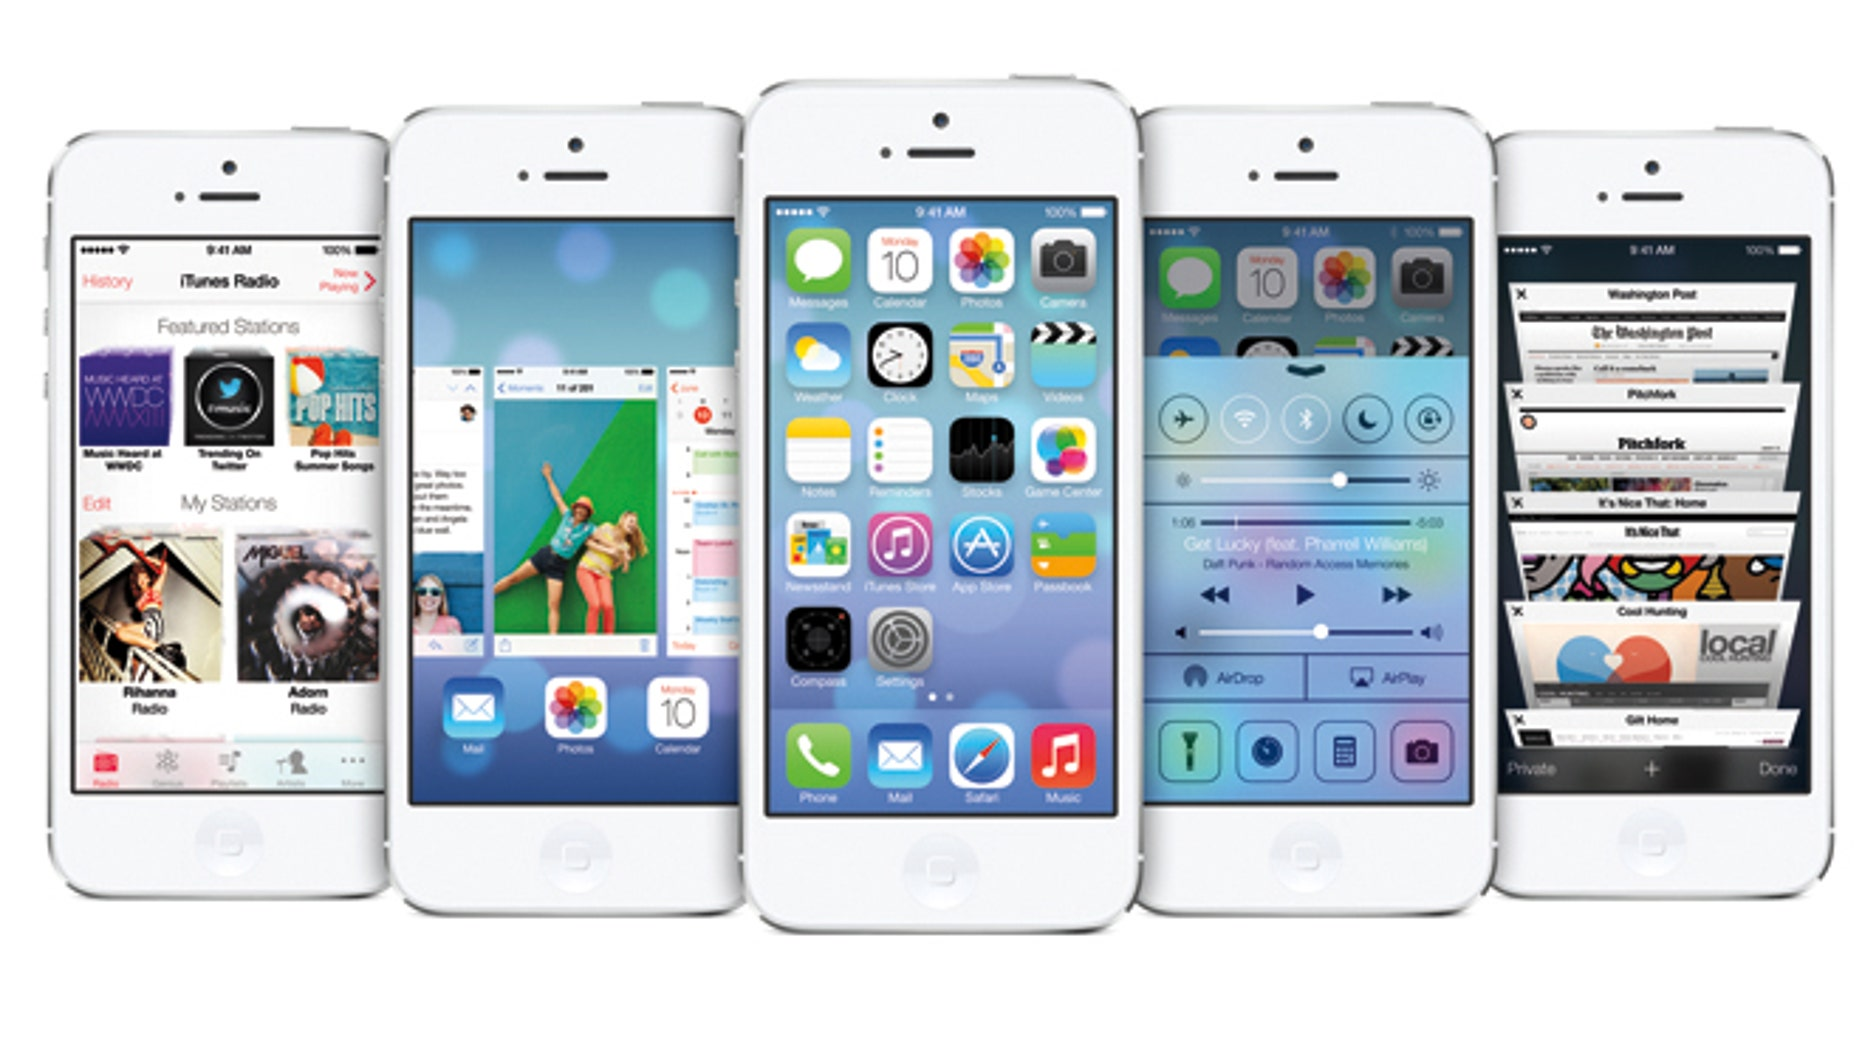 The new iOS 7, unveiled at the 2013 Worldwide Deveoper Conference.